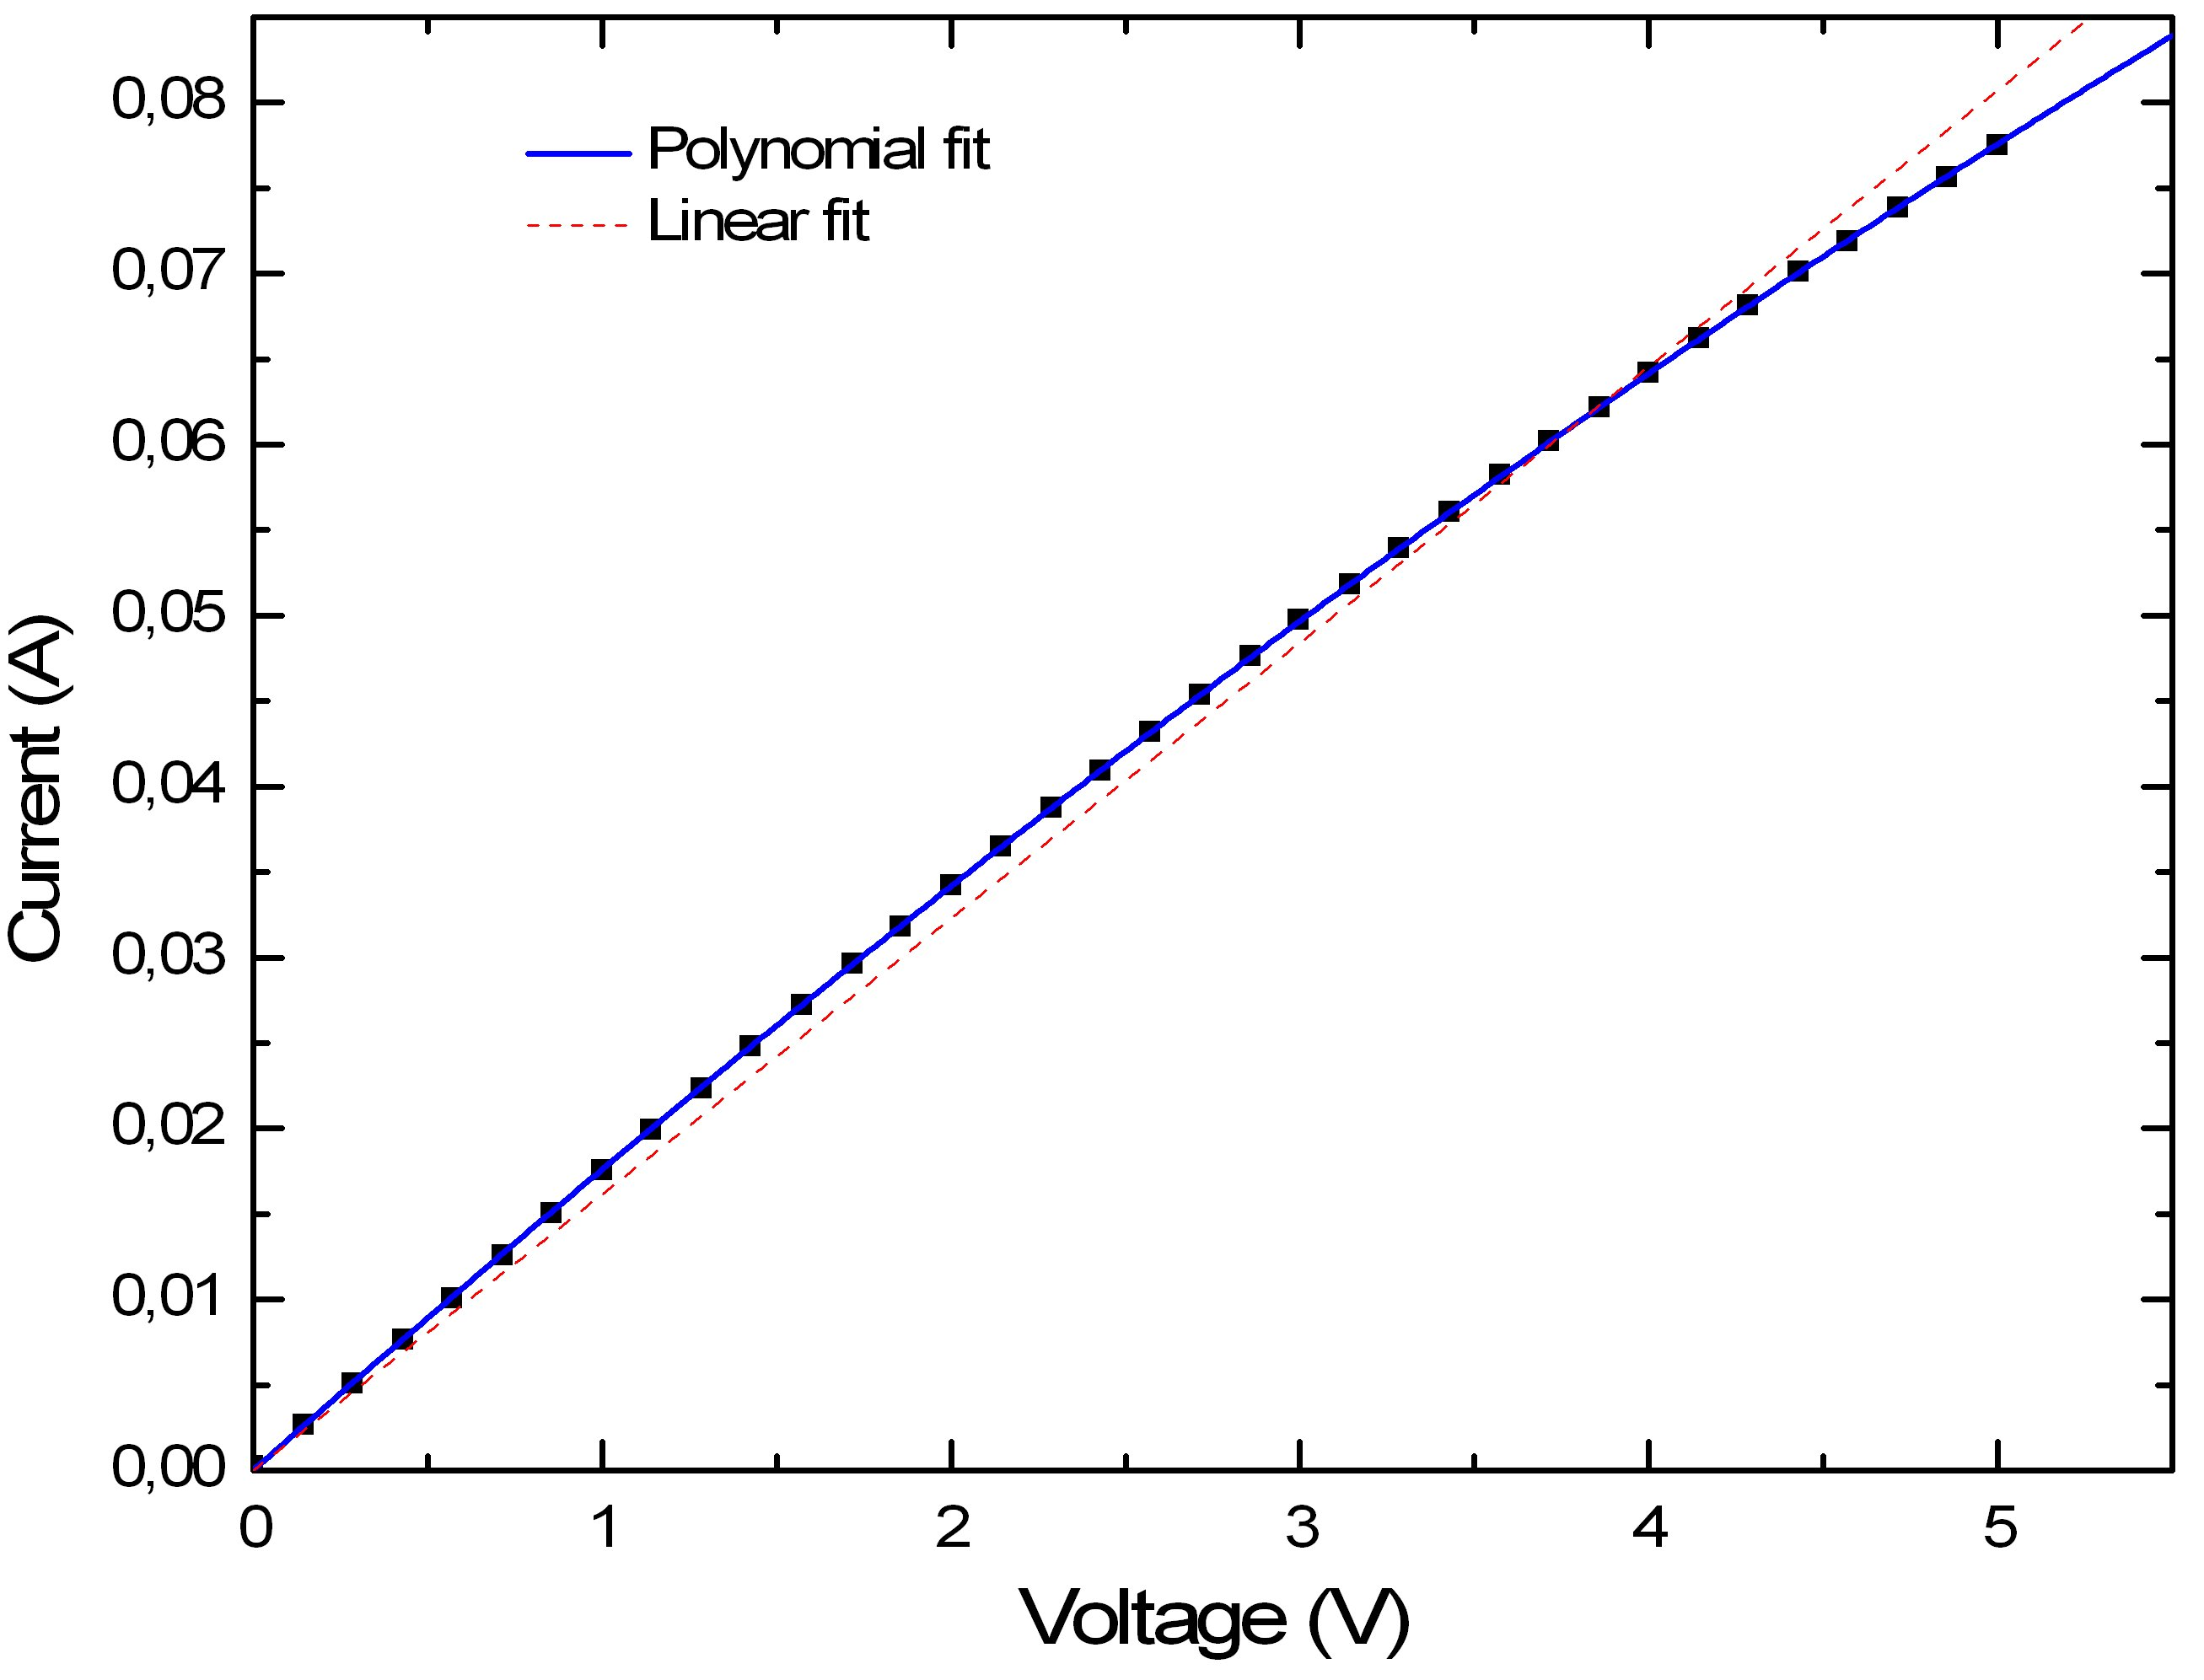 Current-Voltage relation of the resistive heater. To highlight the non-ohmic relation, we show a linear and a polynomial best fit.